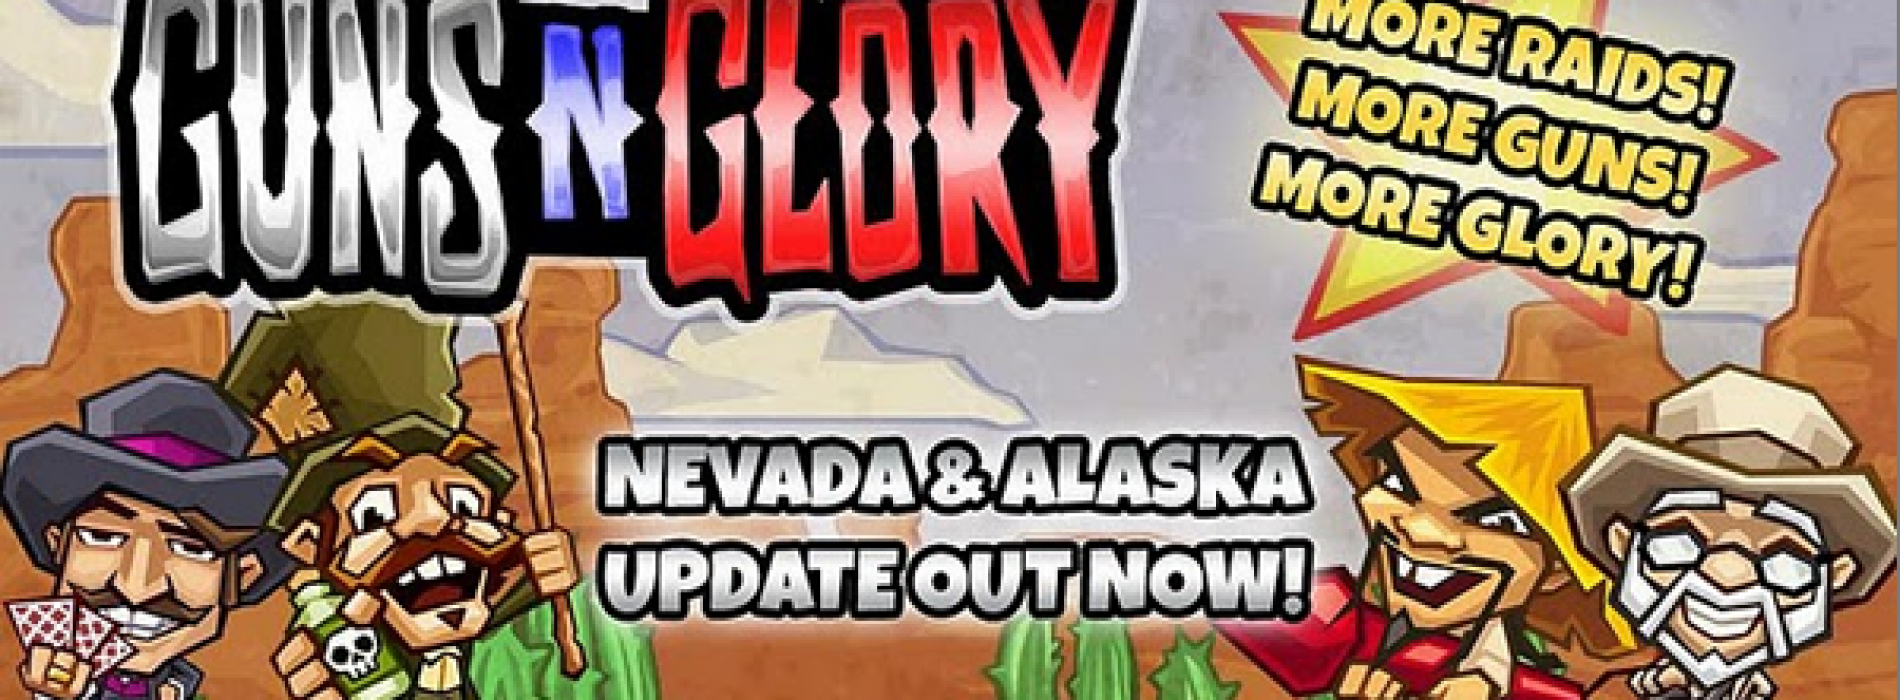 Guns'n'Glory gets 20 new levels with Nevada, Alaska campaigns